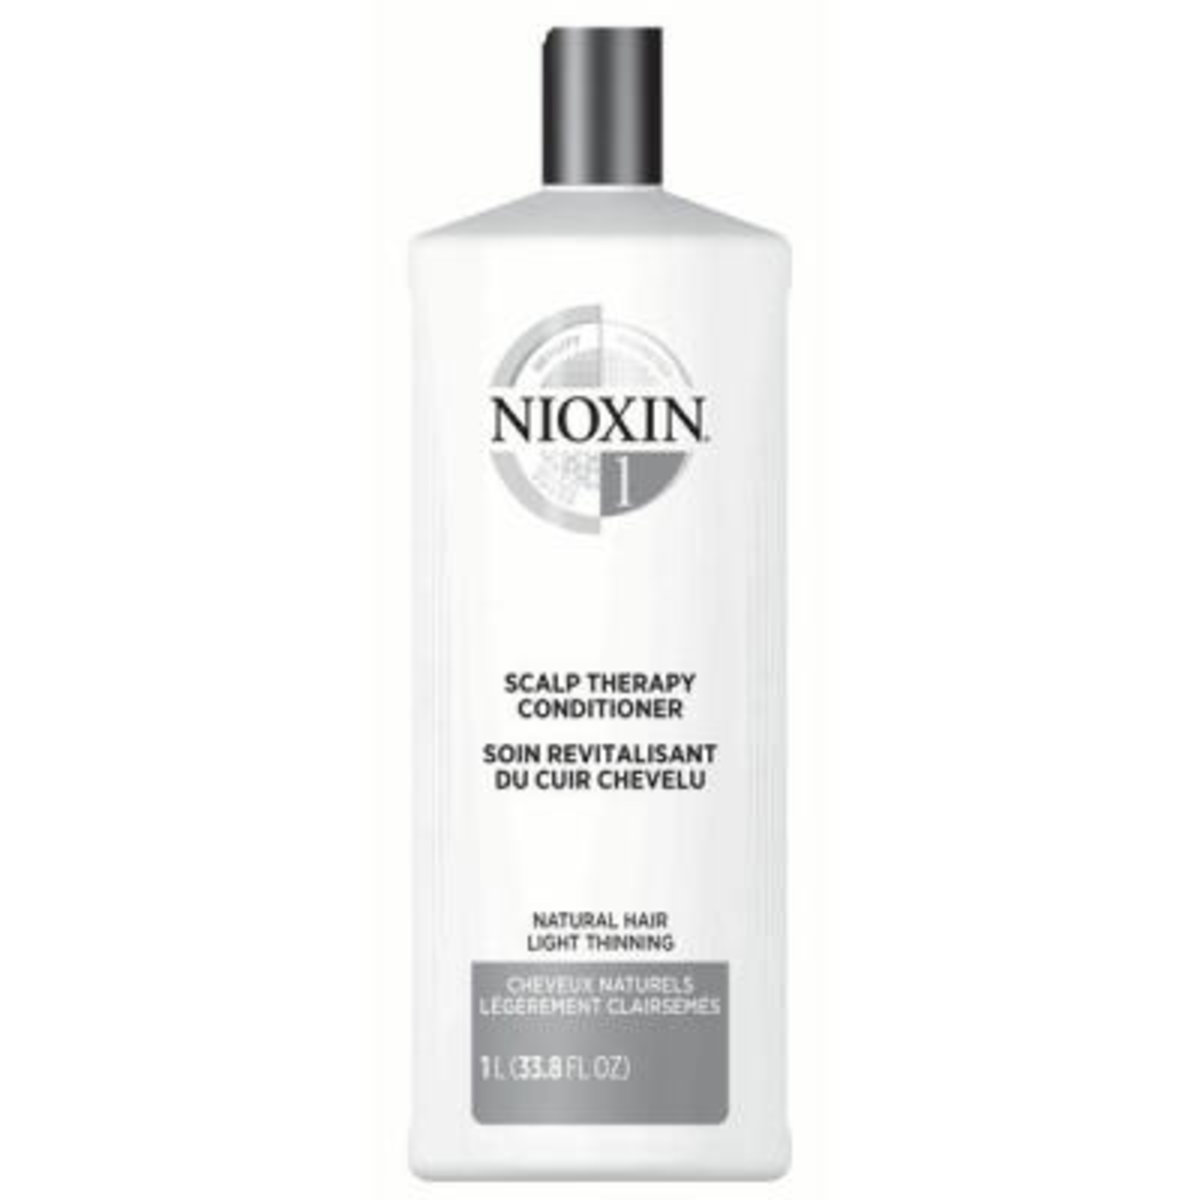 Scalp Therapy #1 (1000 ml) For natural and untreated hair